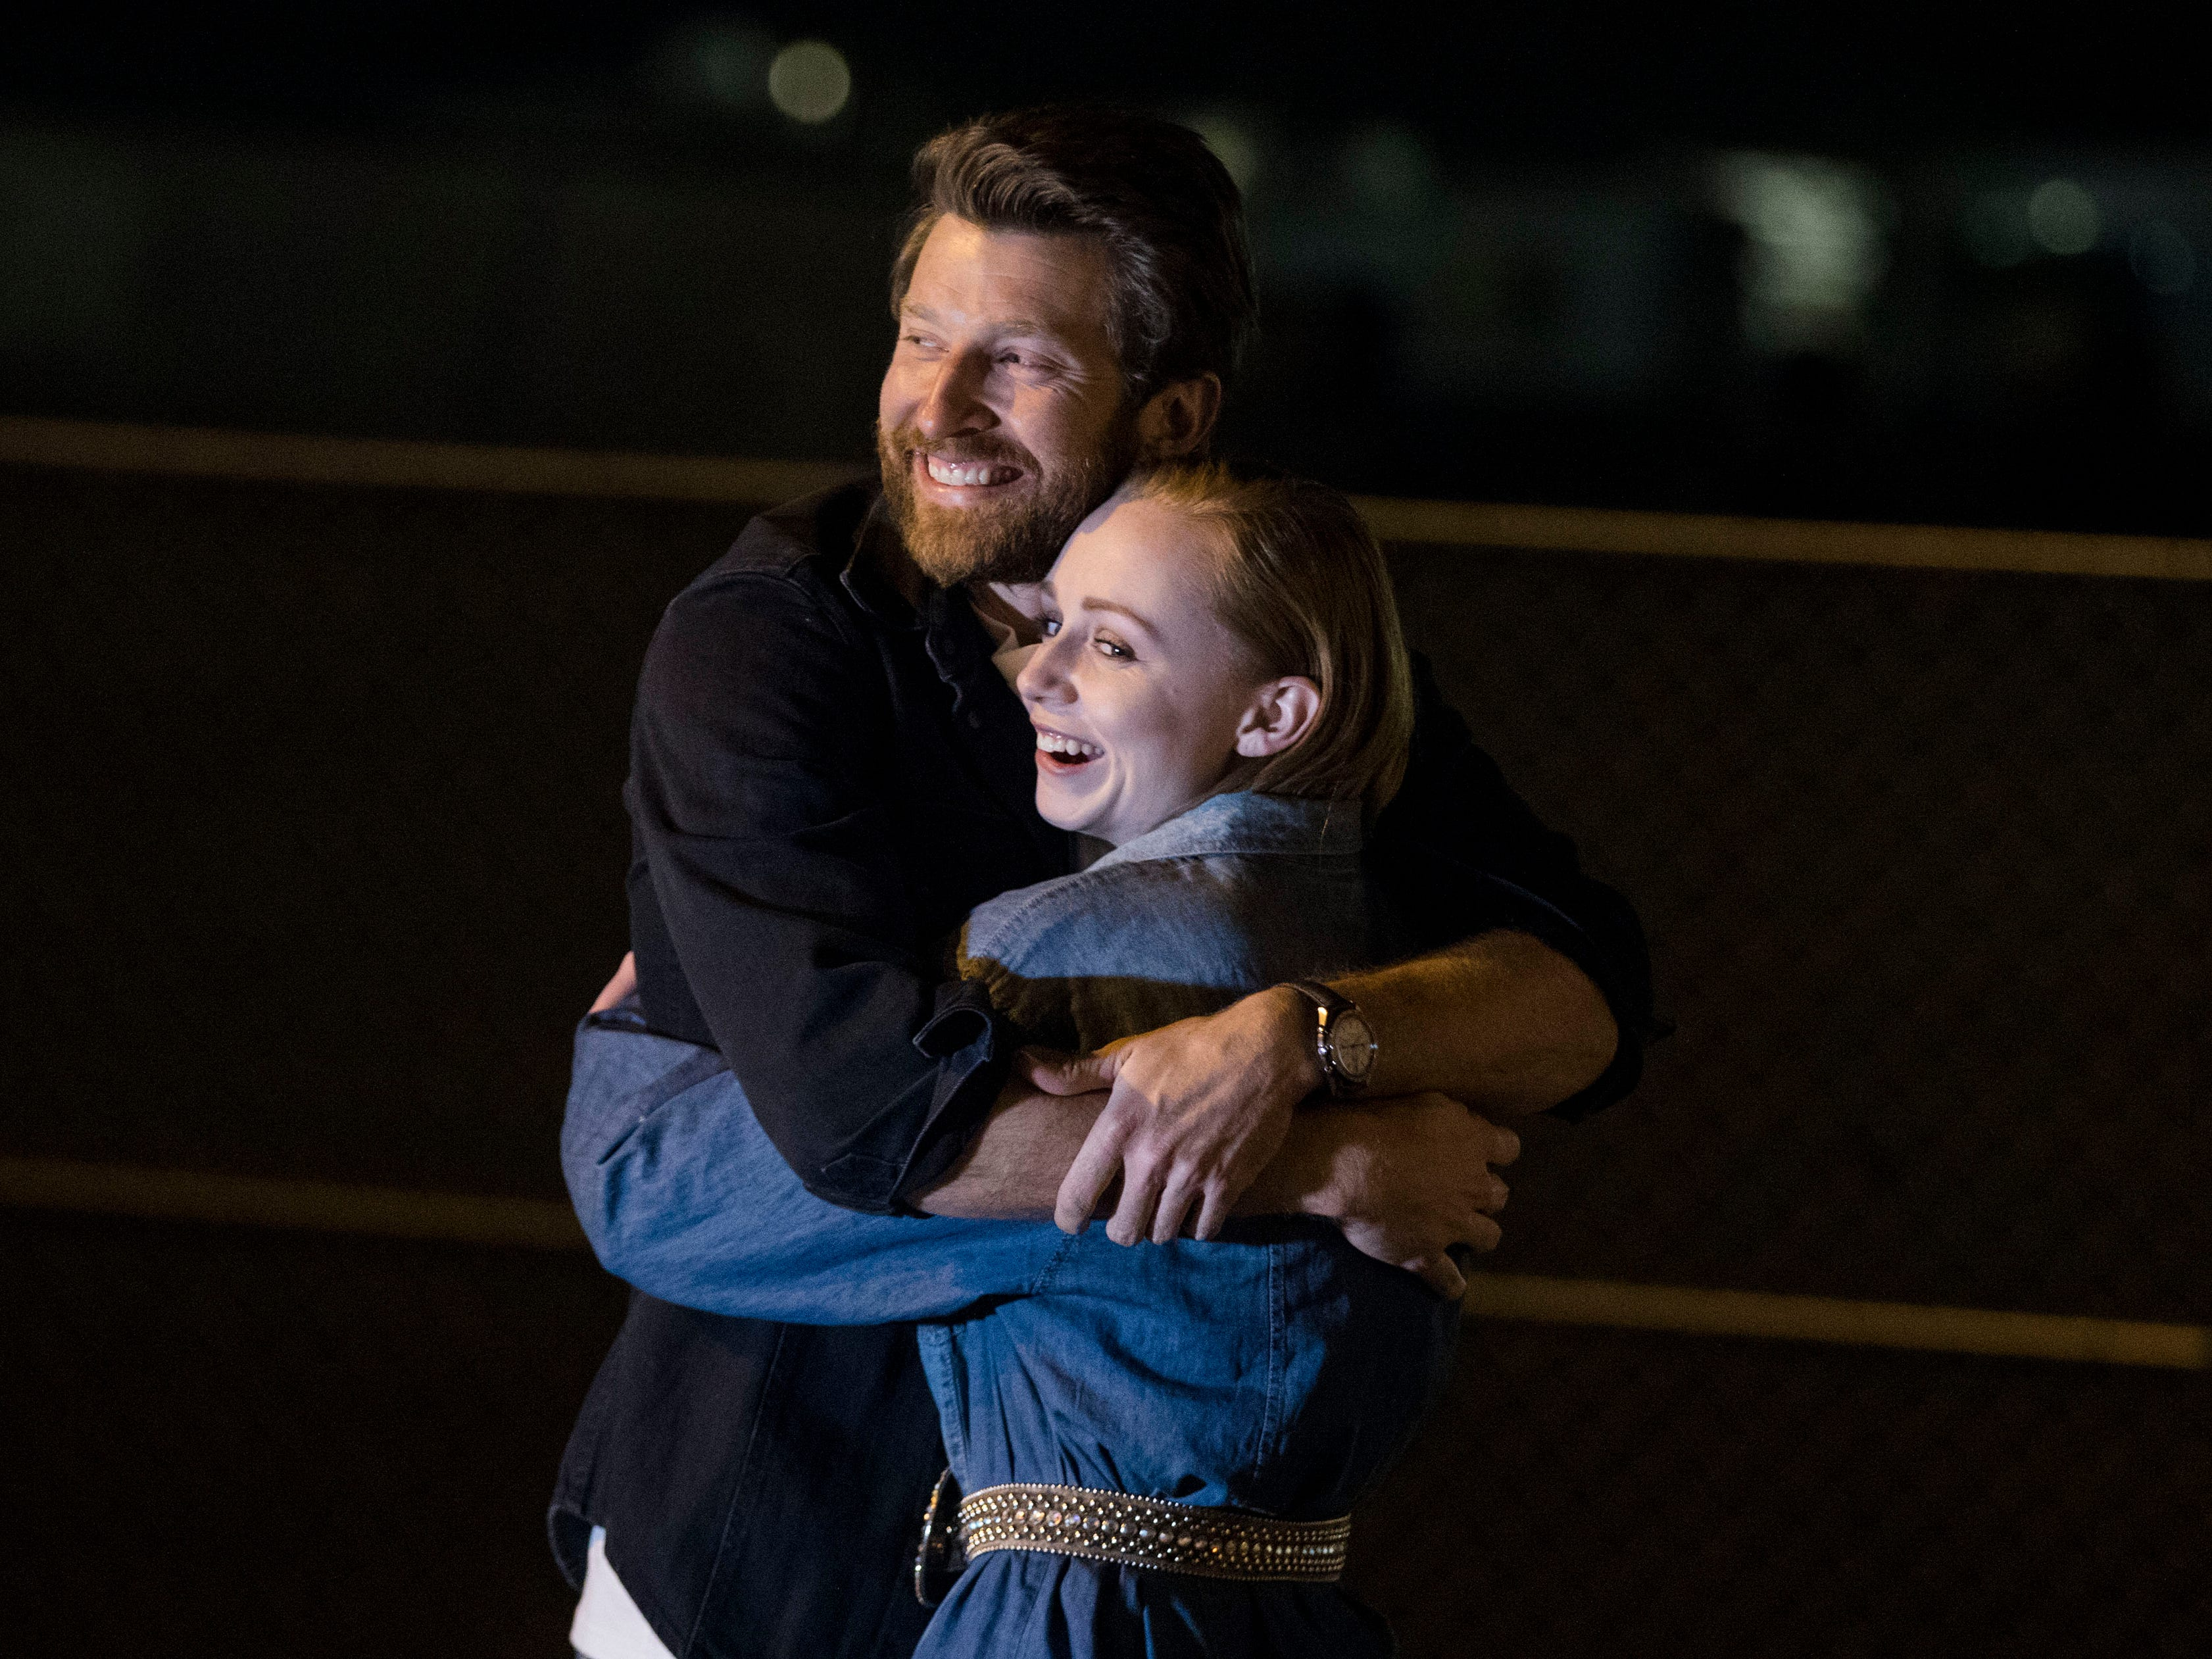 After sinking the game-winning shot, country superstar Brett Eldredge hugs Kayla Coffey of Tucson, who was picked from the audience for the chance meeting with Eldredge, while at Country Thunder Arizona on April 11, 2019, in Florence, Ariz.